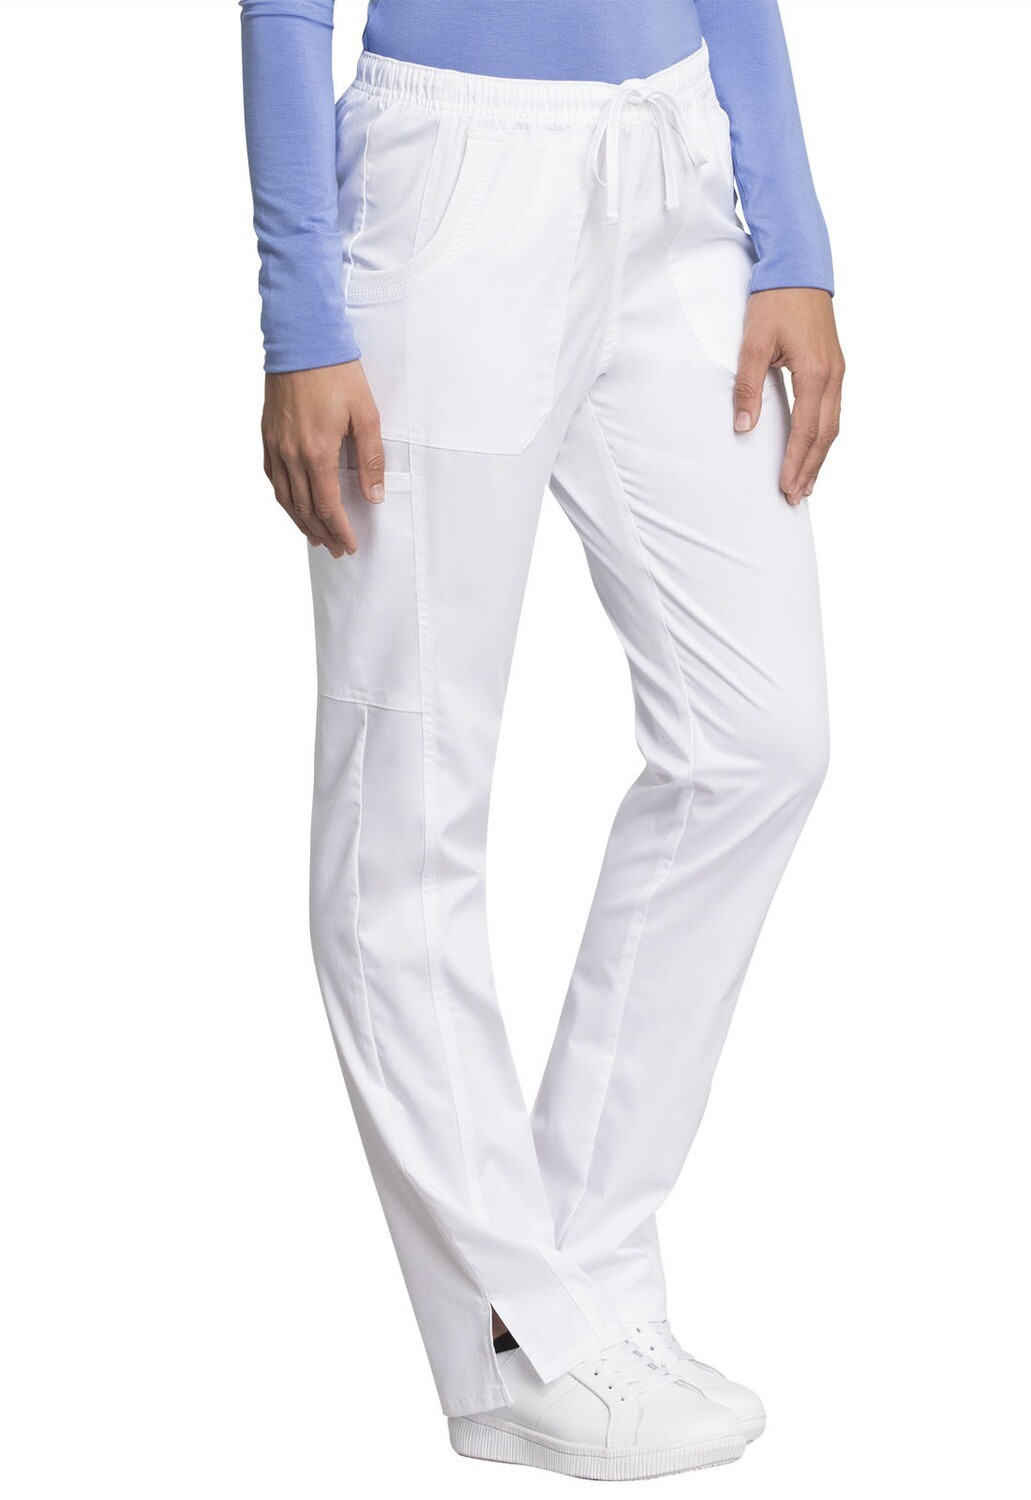 Pantalone CHEROKEE REVOLUTION TECH WW235AB Colore White